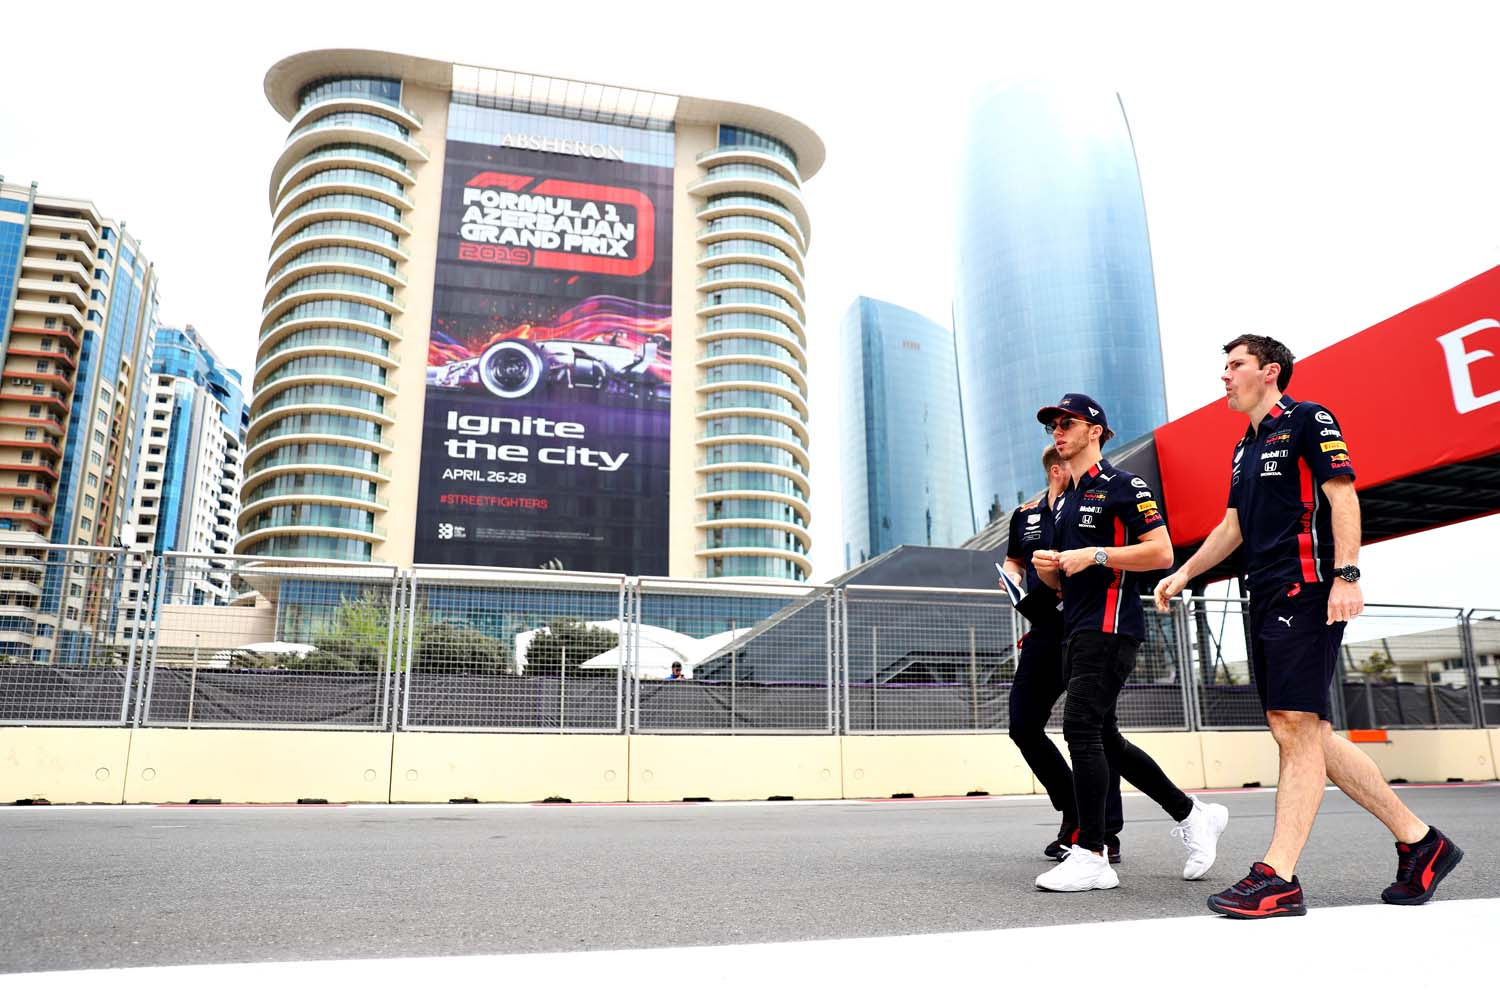 F1 Grand Prix of Azerbaijan - Previews